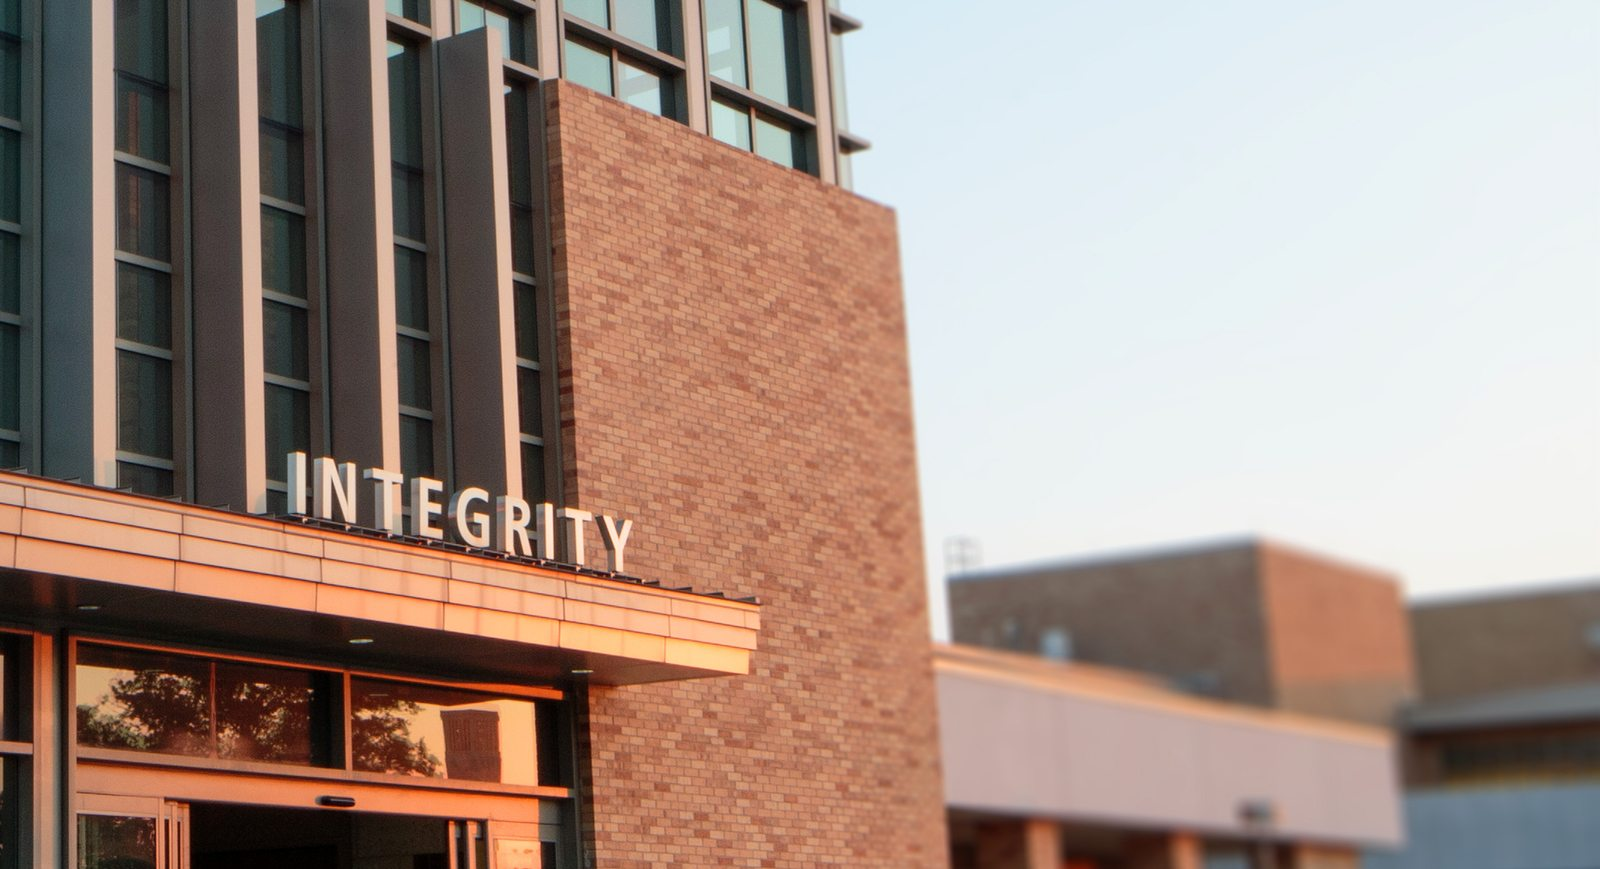 Photo of Texas A&M University Memorial Student Center entrance with the word Integrity about it